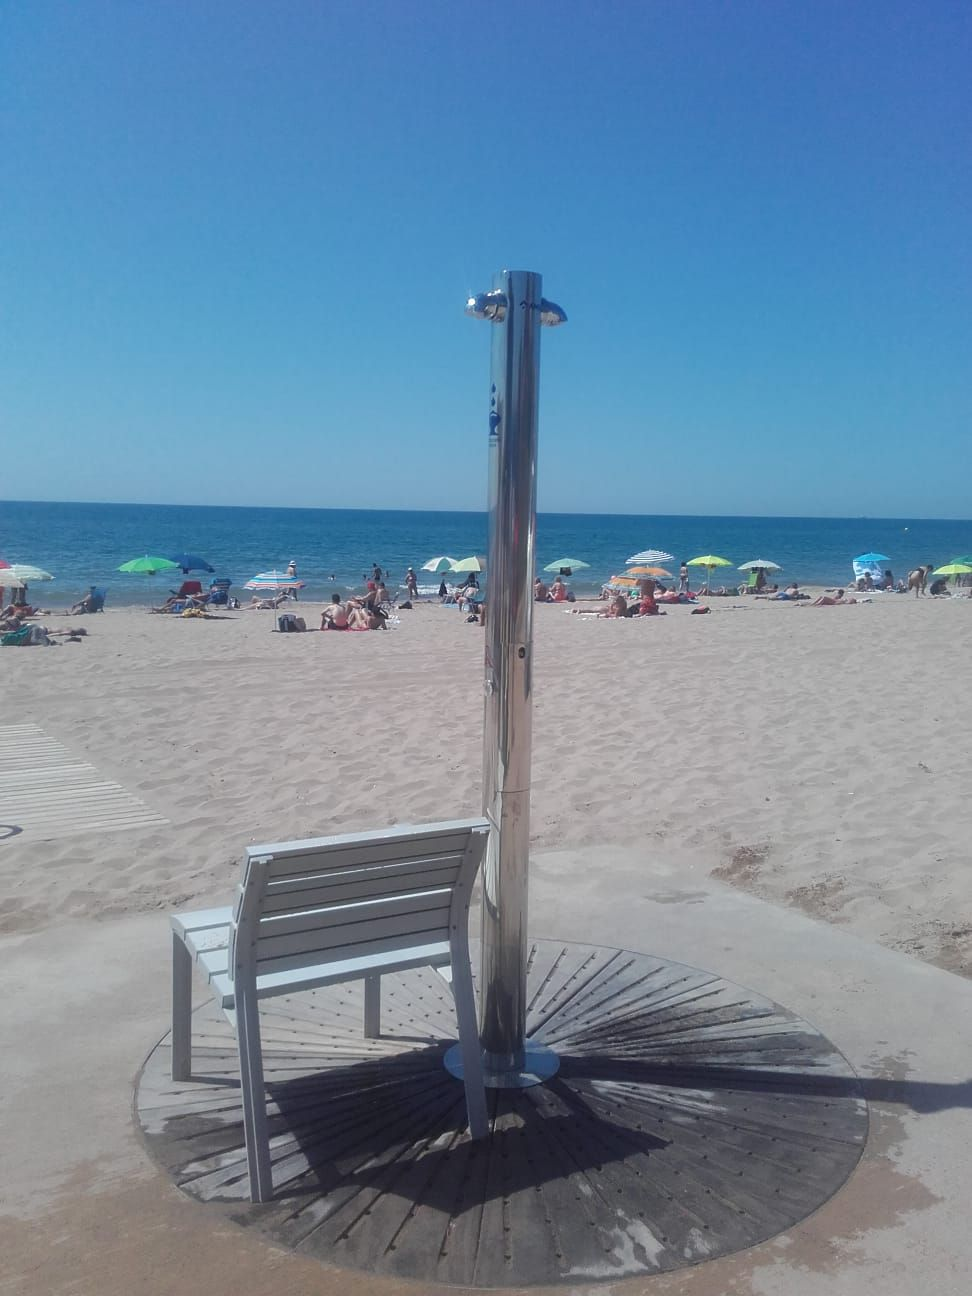 Stern Anti Vandal Shower Kit Installed at a Public Beach | Stern ...